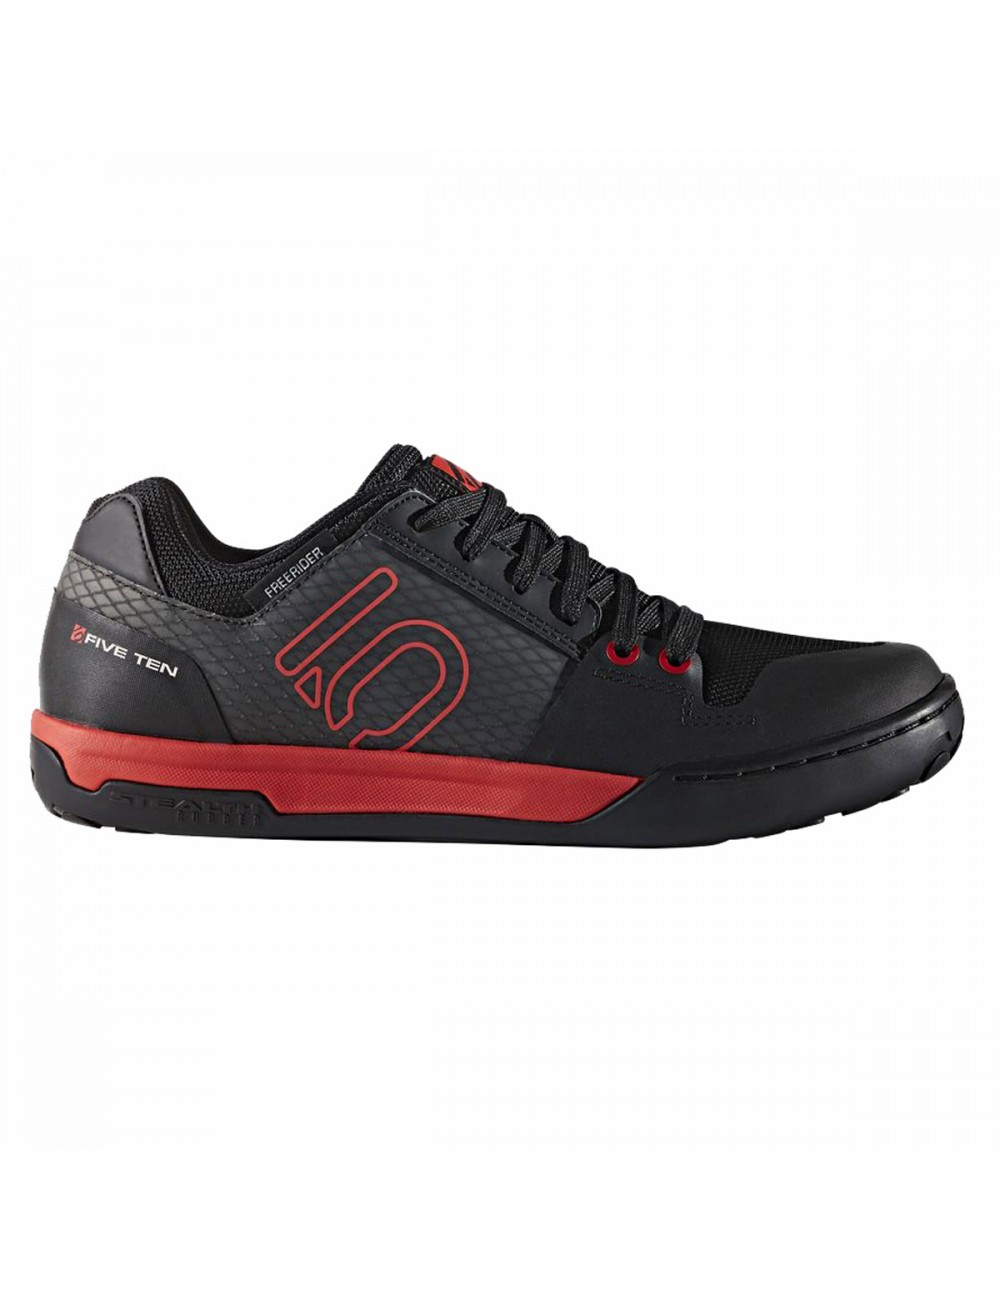 Five Ten Freerider Contact Shoes - Black/Red_11373